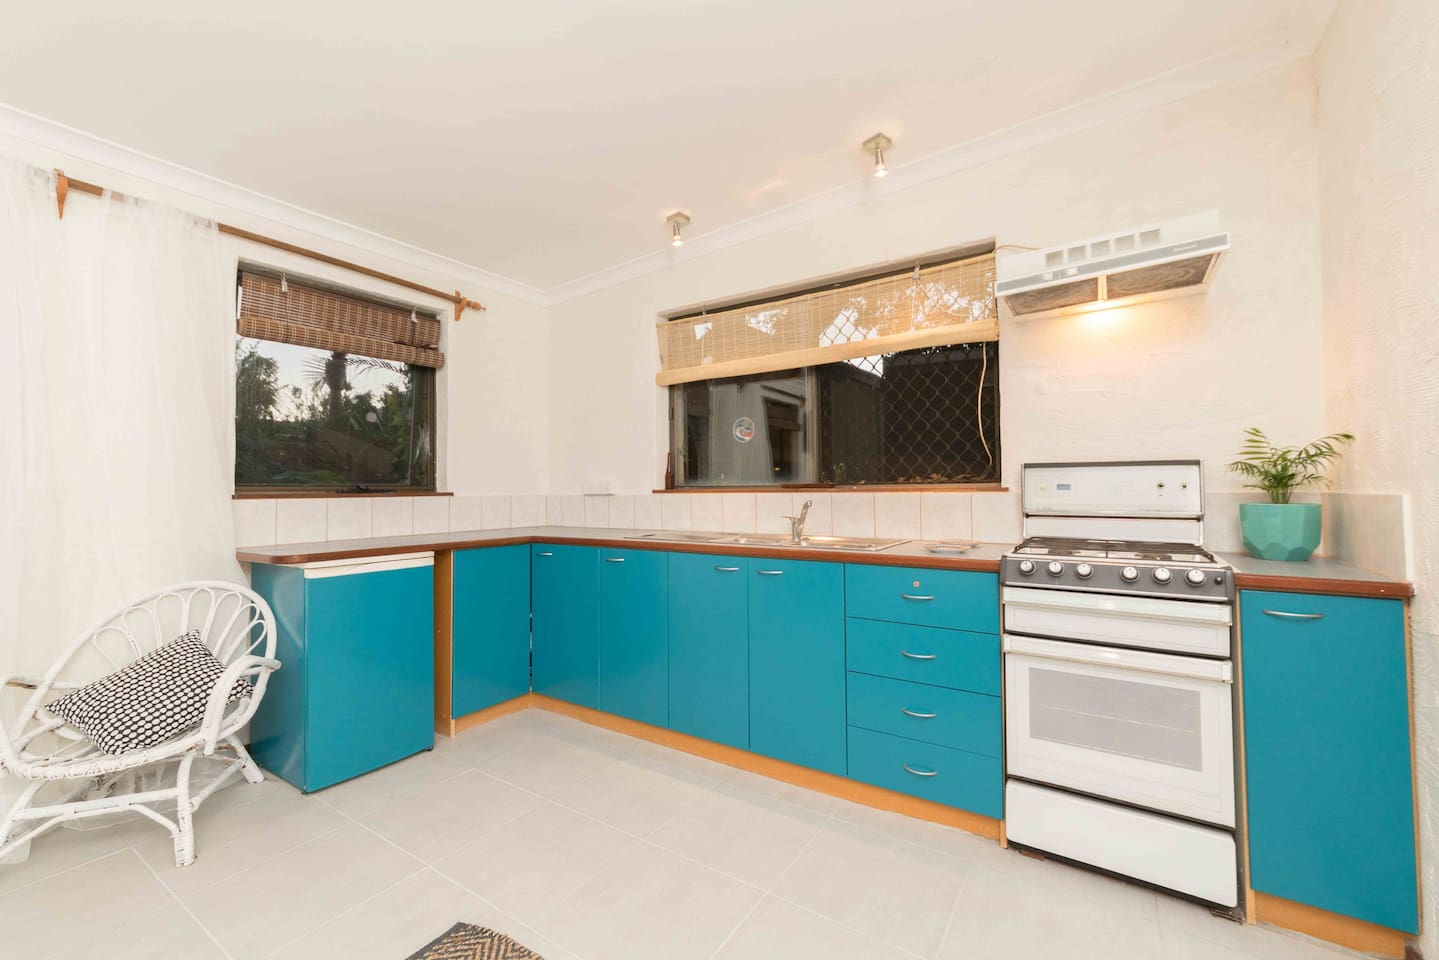 Poolside Oasis - Guesthouses for Rent in Beaconsfield, Western ...